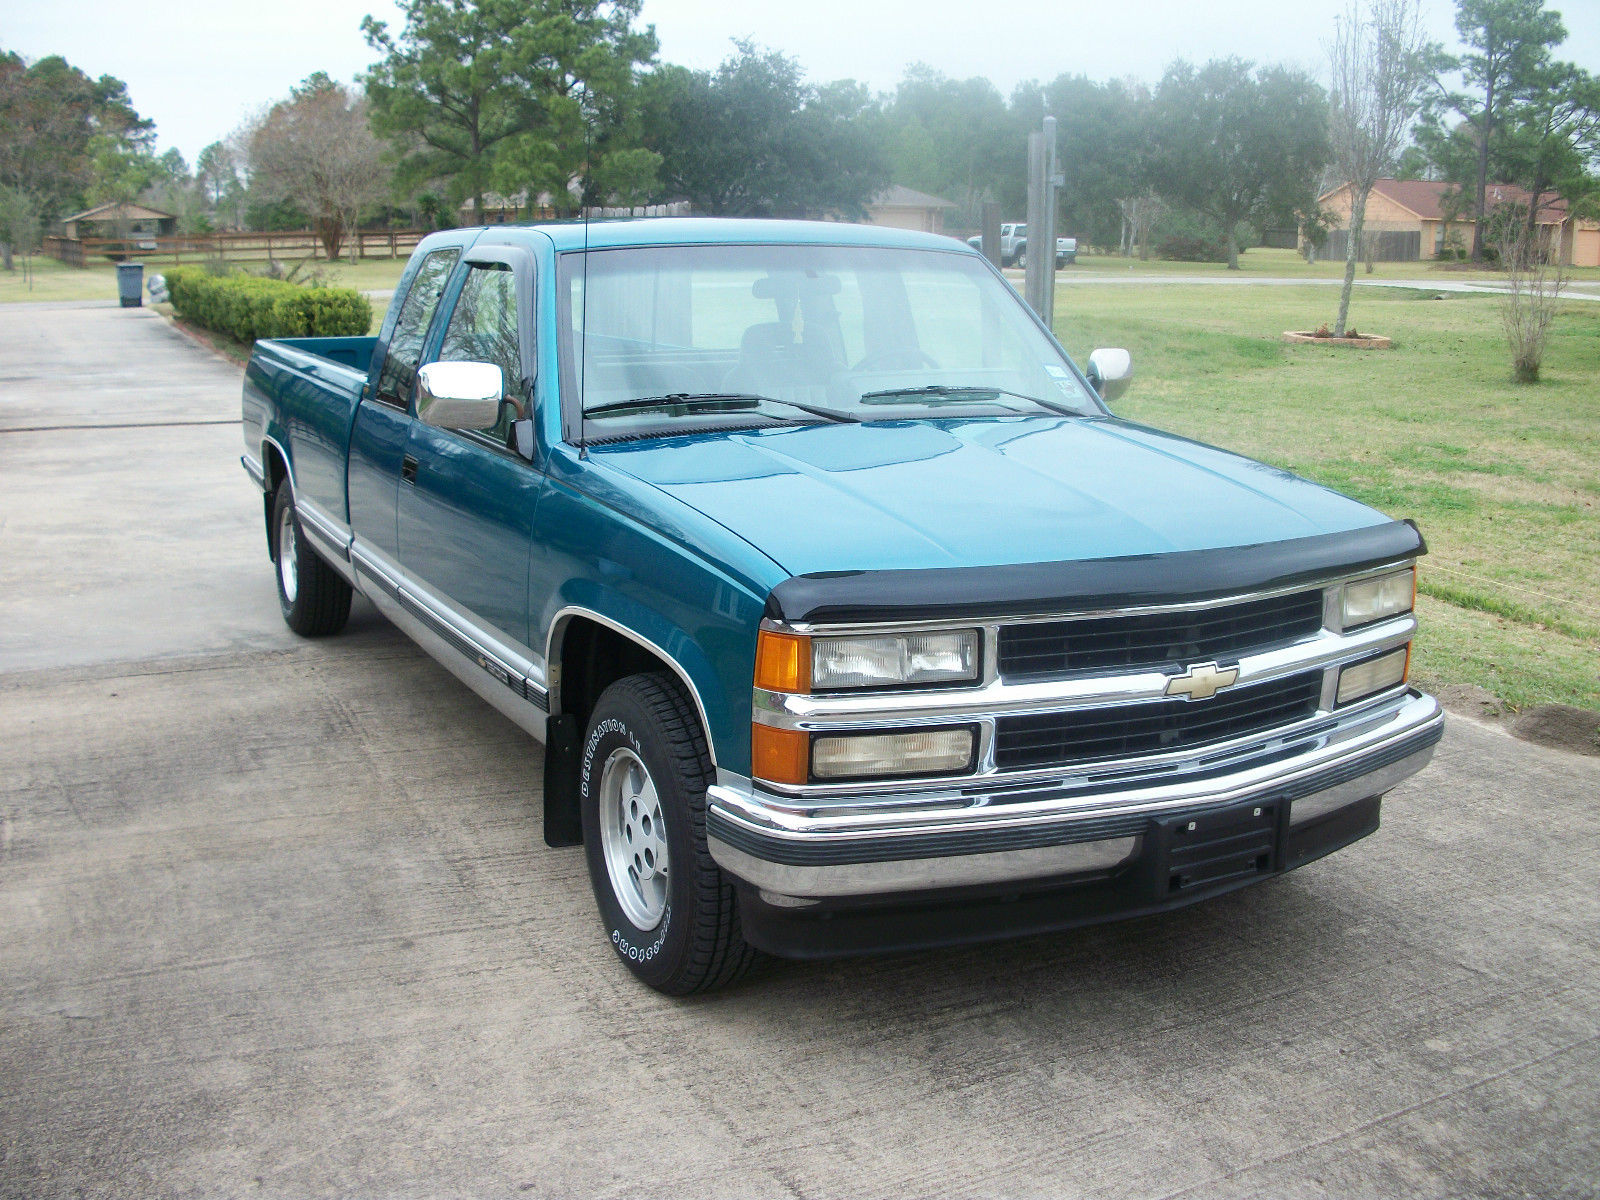 1994 chevy c1500 silverado ext cab longbed classic chevrolet c k pickup 1500 1994 for sale. Black Bedroom Furniture Sets. Home Design Ideas